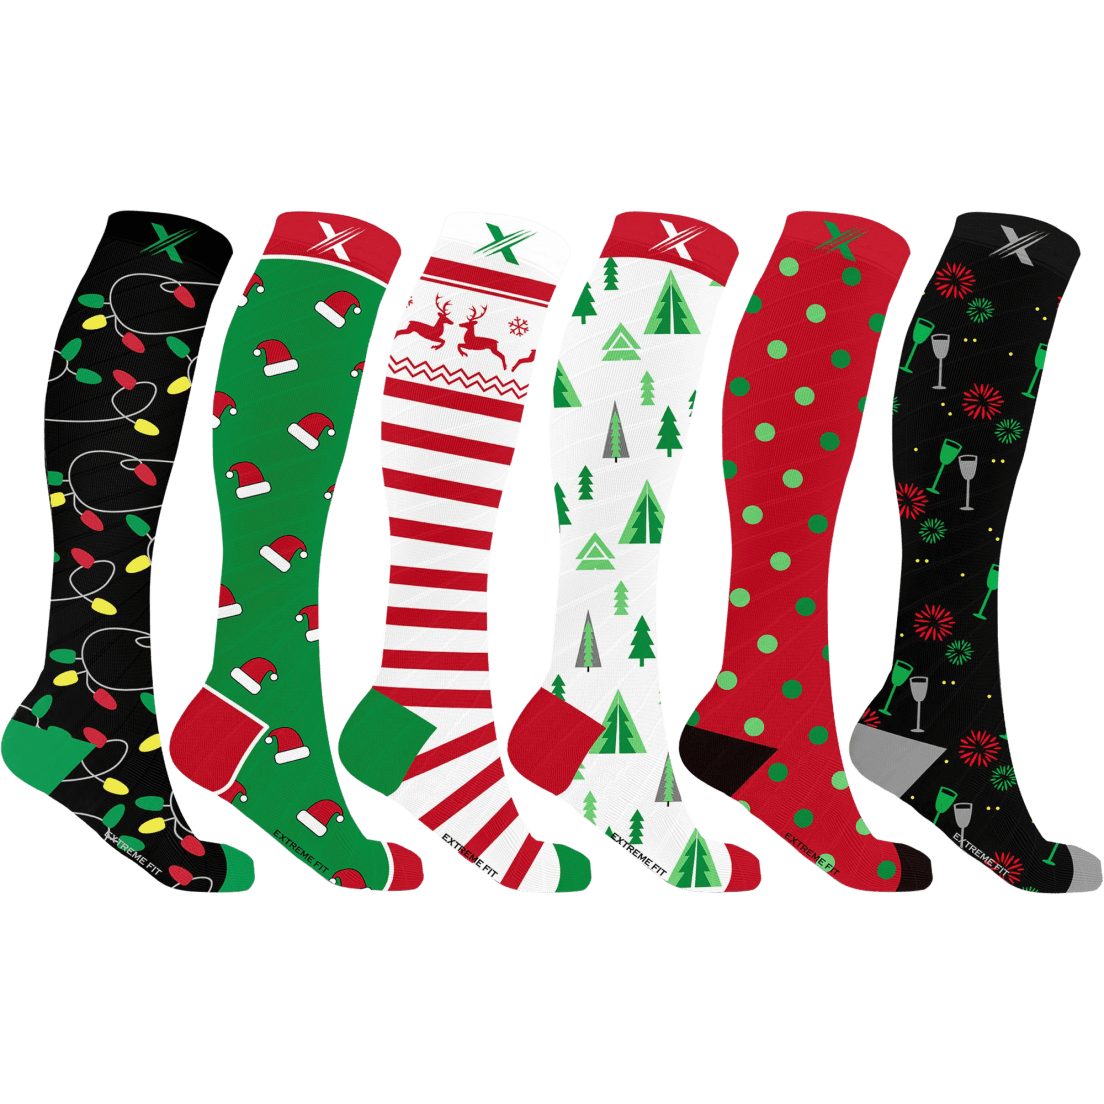 c0c88b4d2 XTF Holiday Collection Knee High Compression Socks - 3 Pack